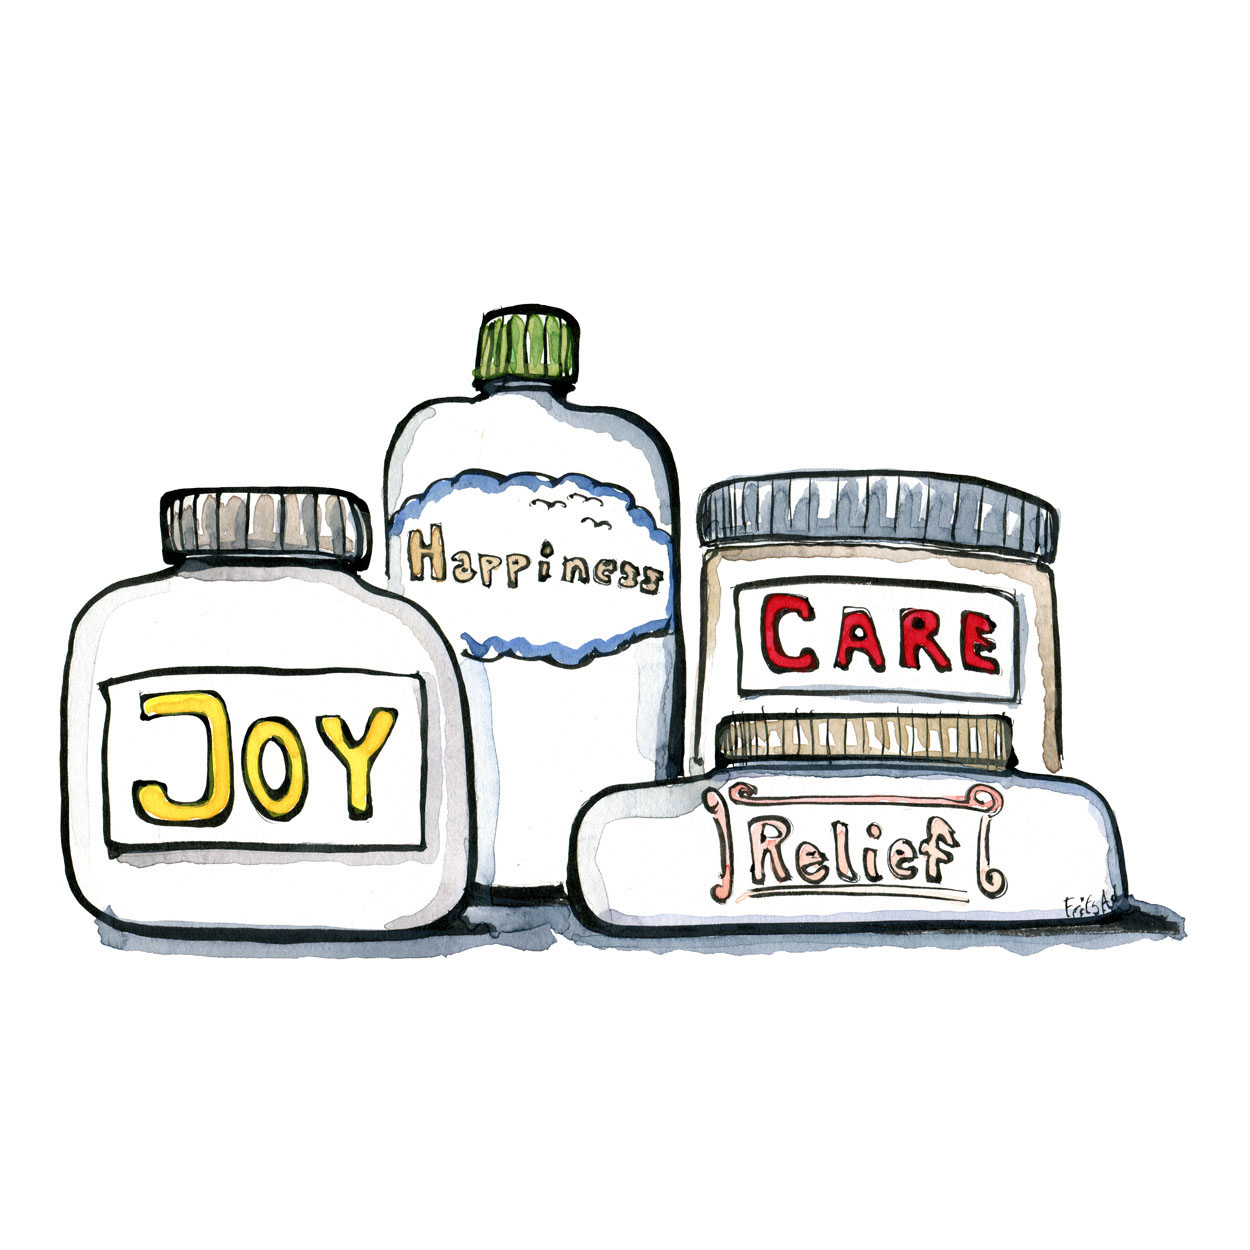 Four containers, with happiness, joy, relief, and care written on them. illustration by Frits Ahlefeldt